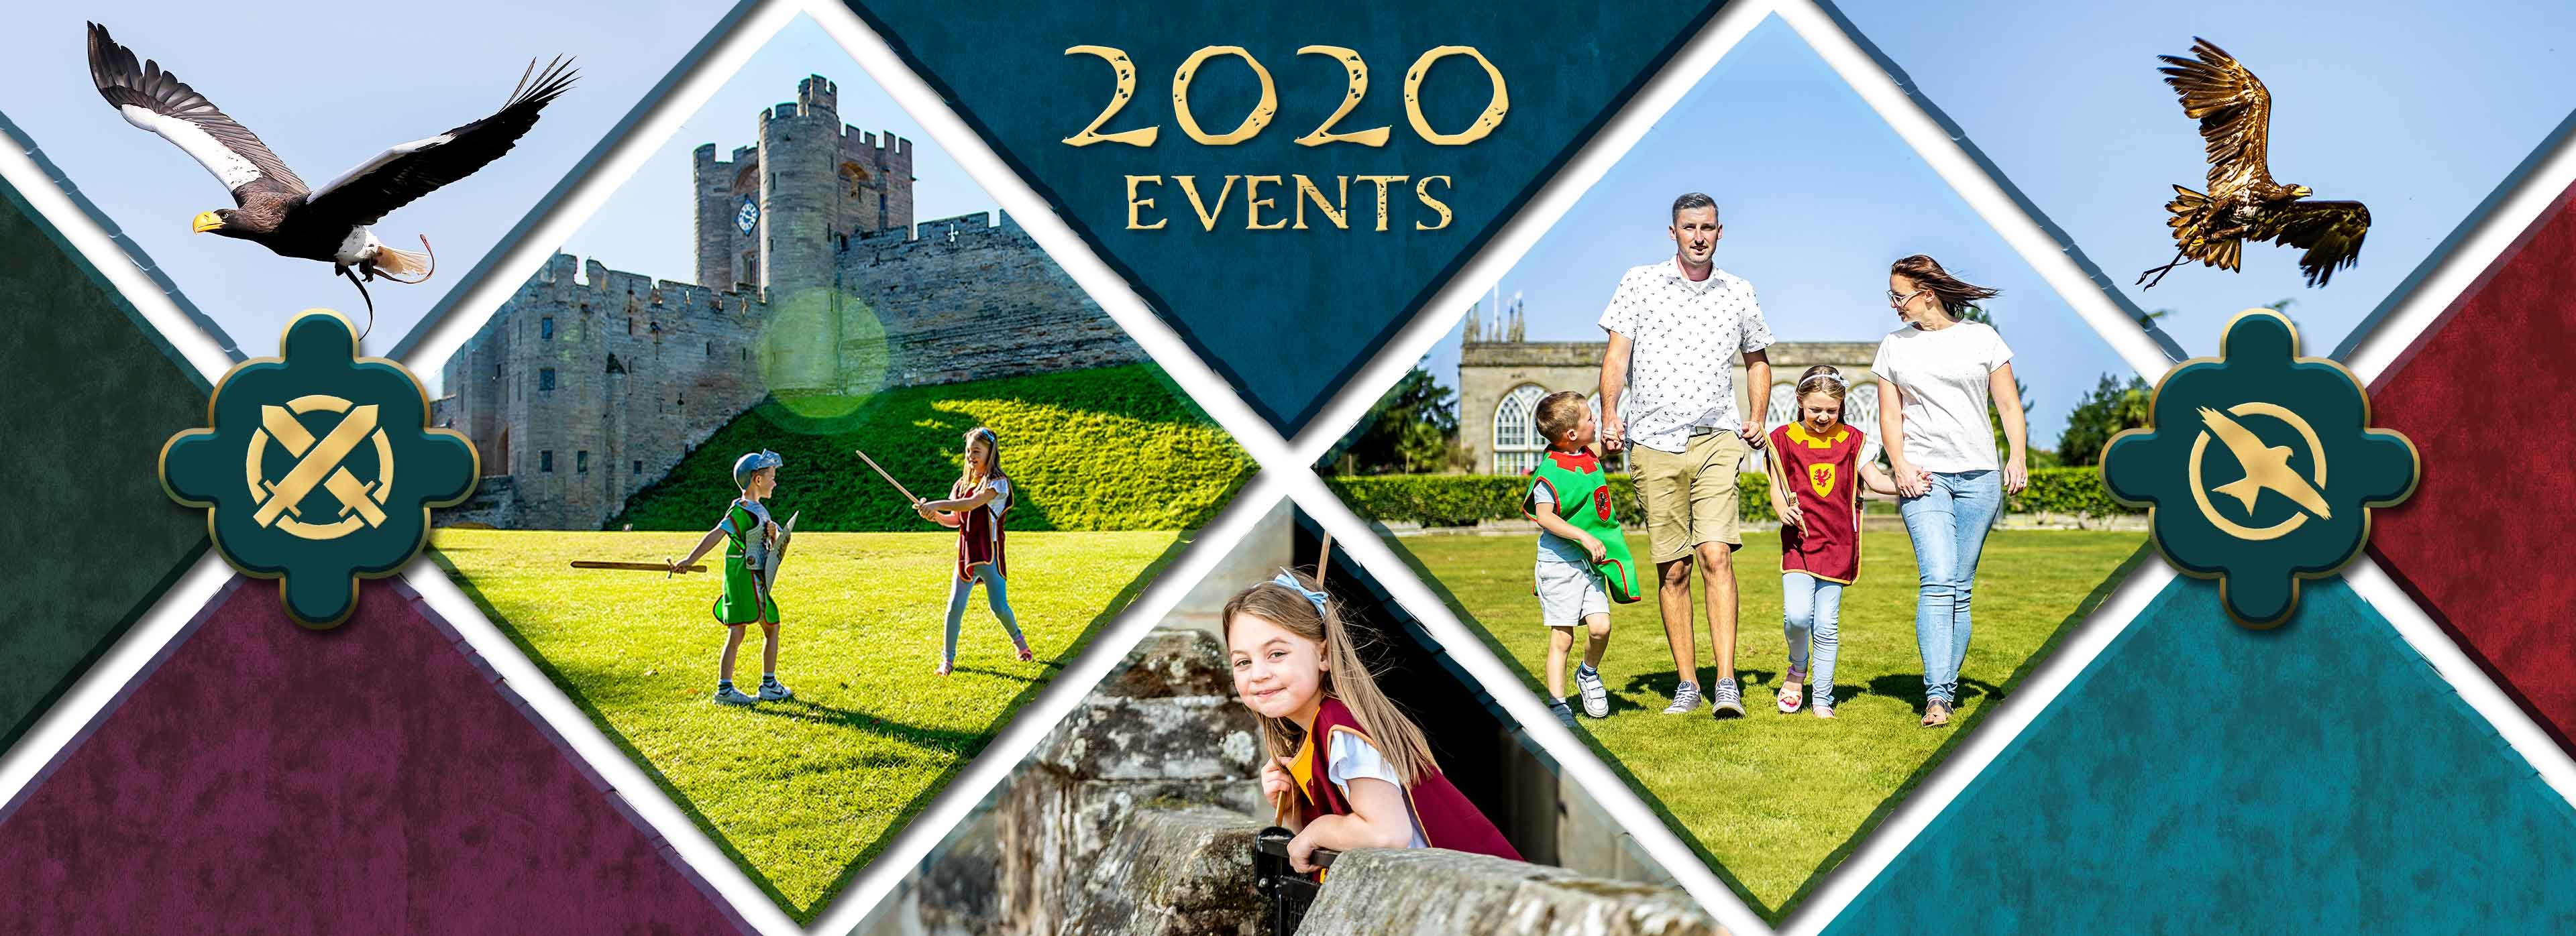 Events at Warwick Castle